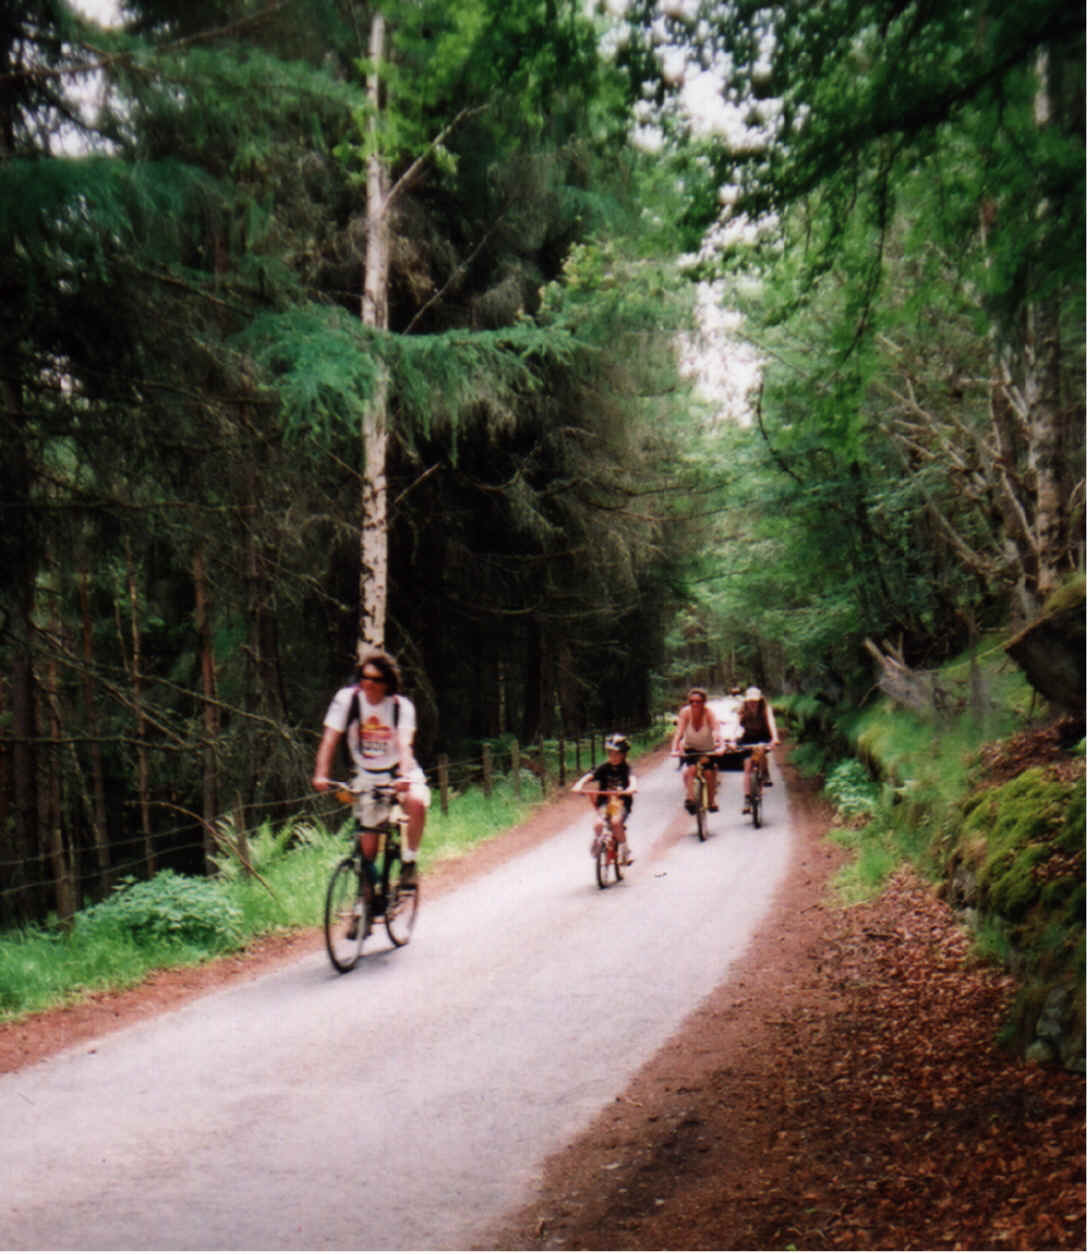 3rd Sunday in June Scottish Bikeathon in aid of Leukaemia Research. Take part in a family cycle round the beautiful quiet roads of Badenoch and make money for Leukaemia Research or cheer the cyclists back to Ardvonie Park in Kingussie. This is NOT a race.